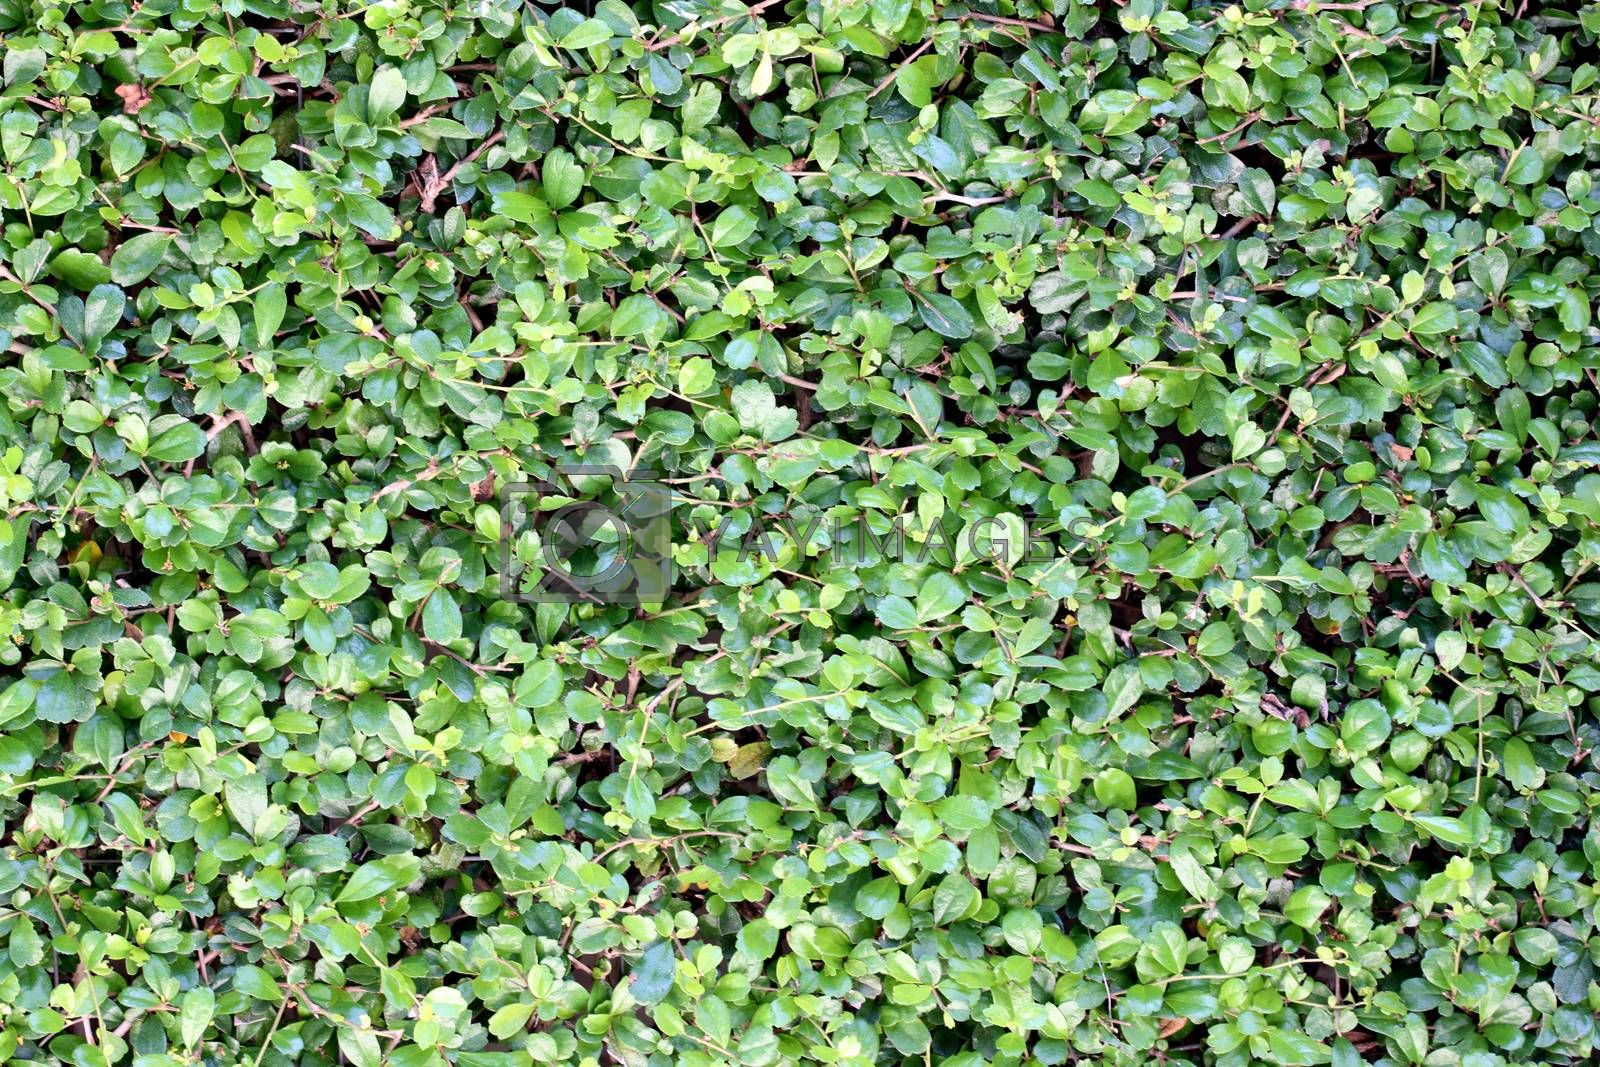 Green leaves in garden for the background image.